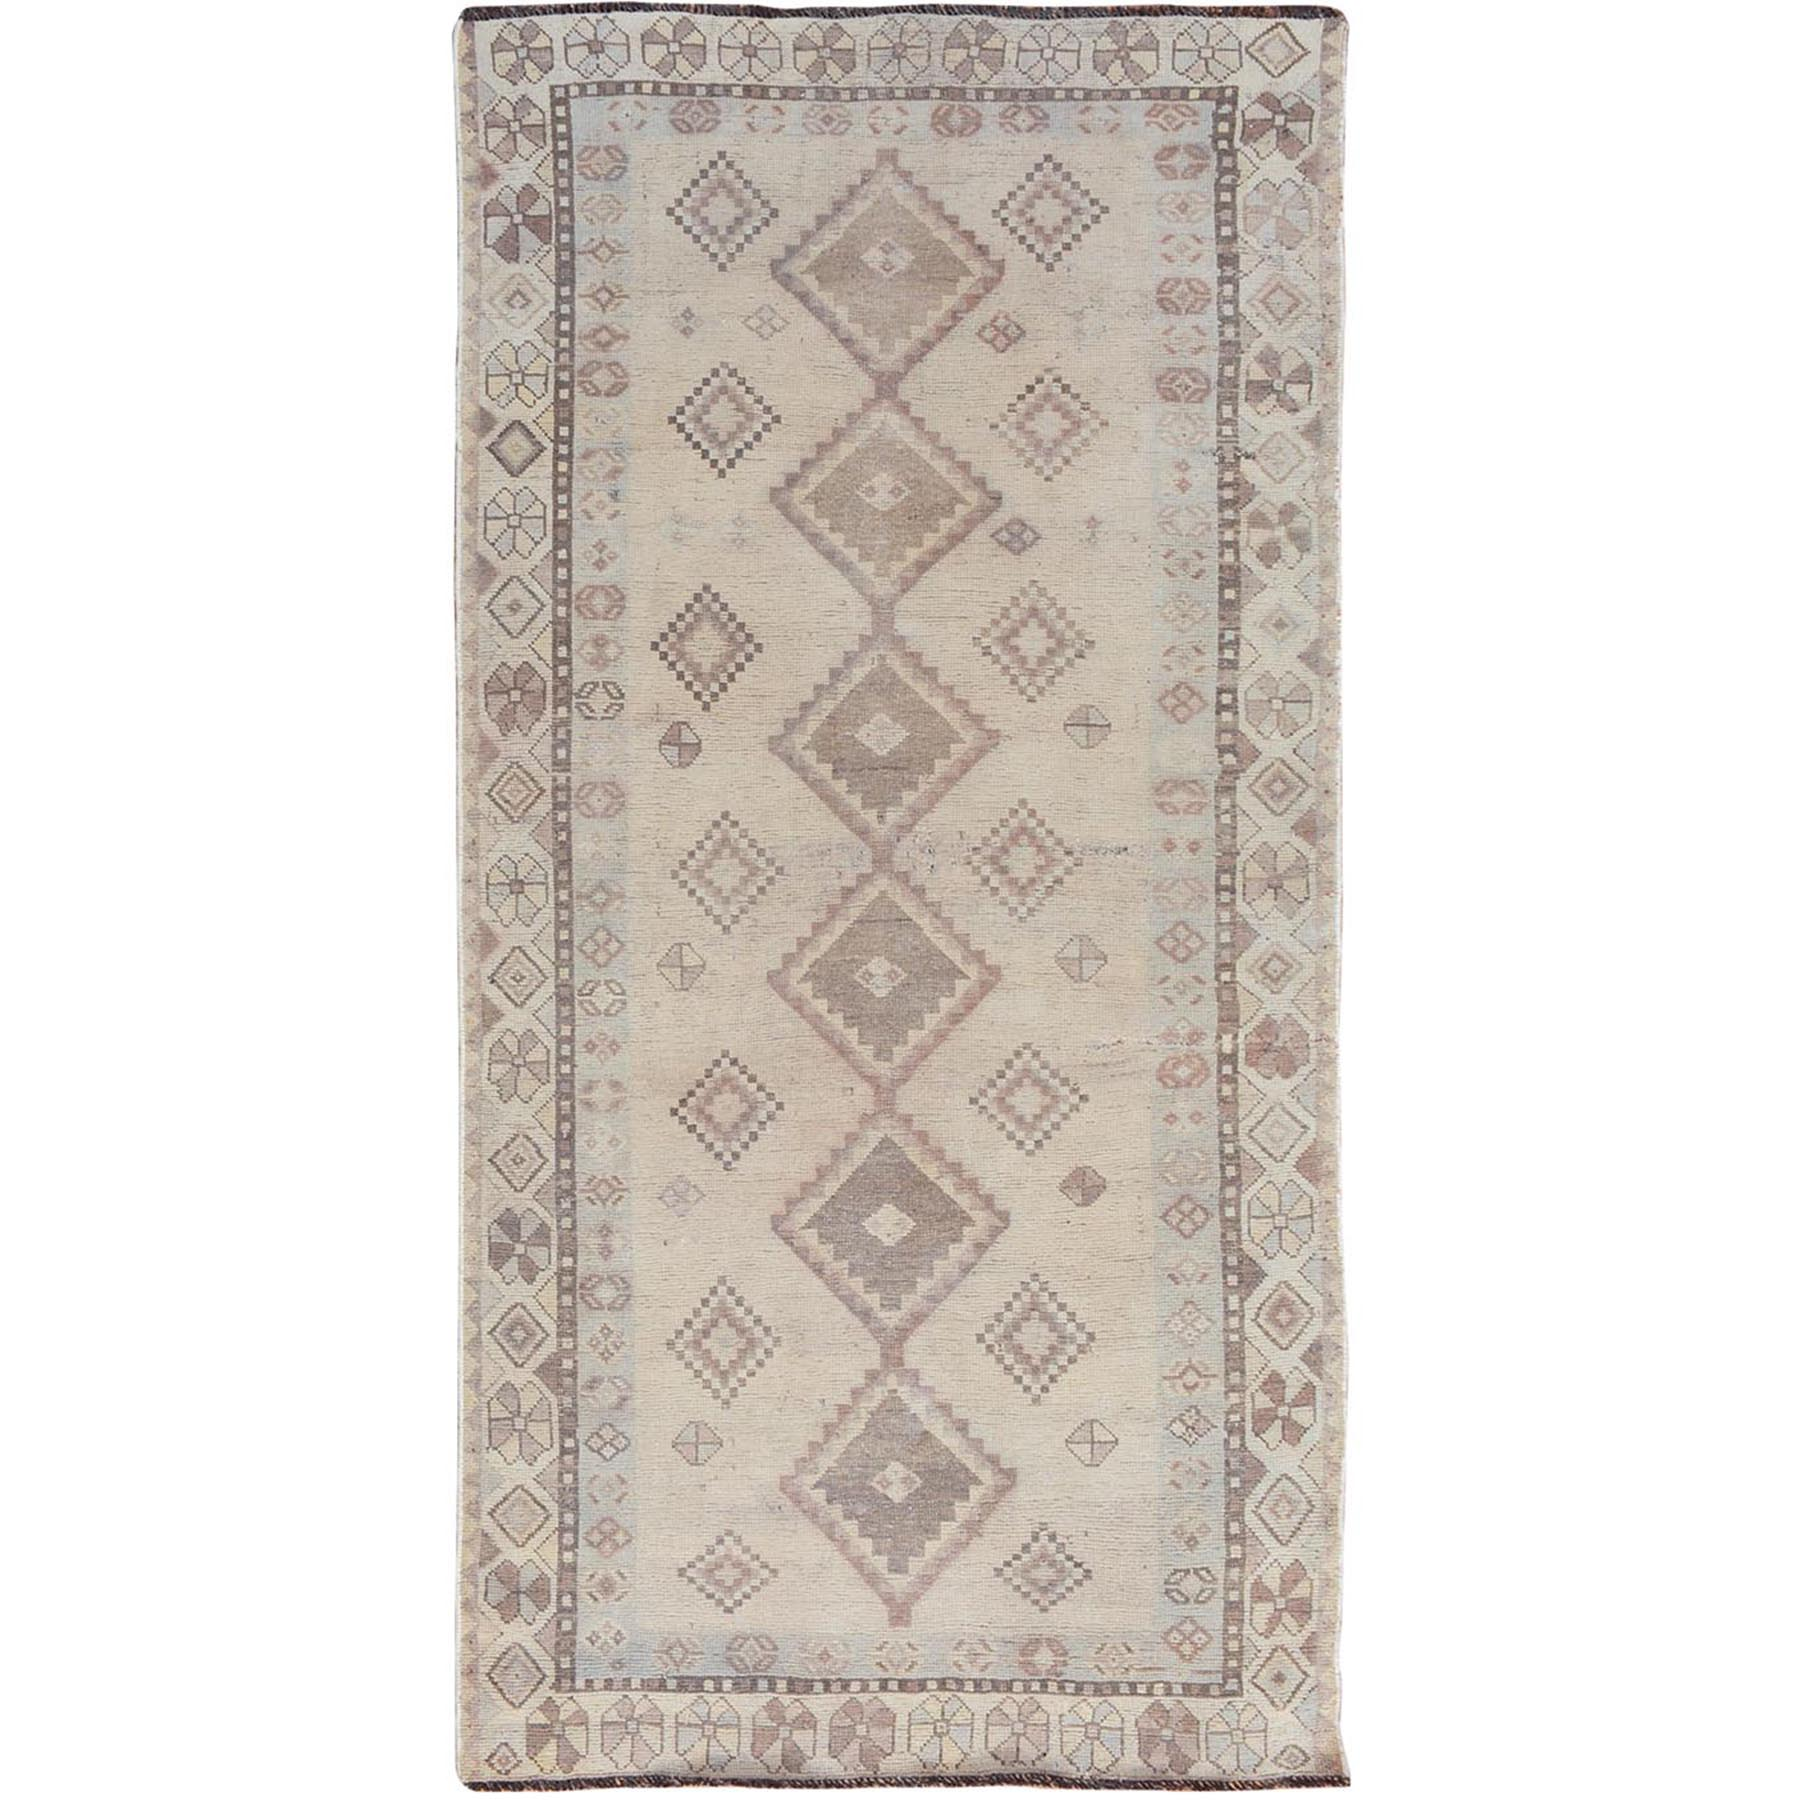 "4'X7'10"" Distressed Colors Vintage And Worn Down Persian Shiraz Wide Runner Pure Wool Bohemian Rug moae7ba0"